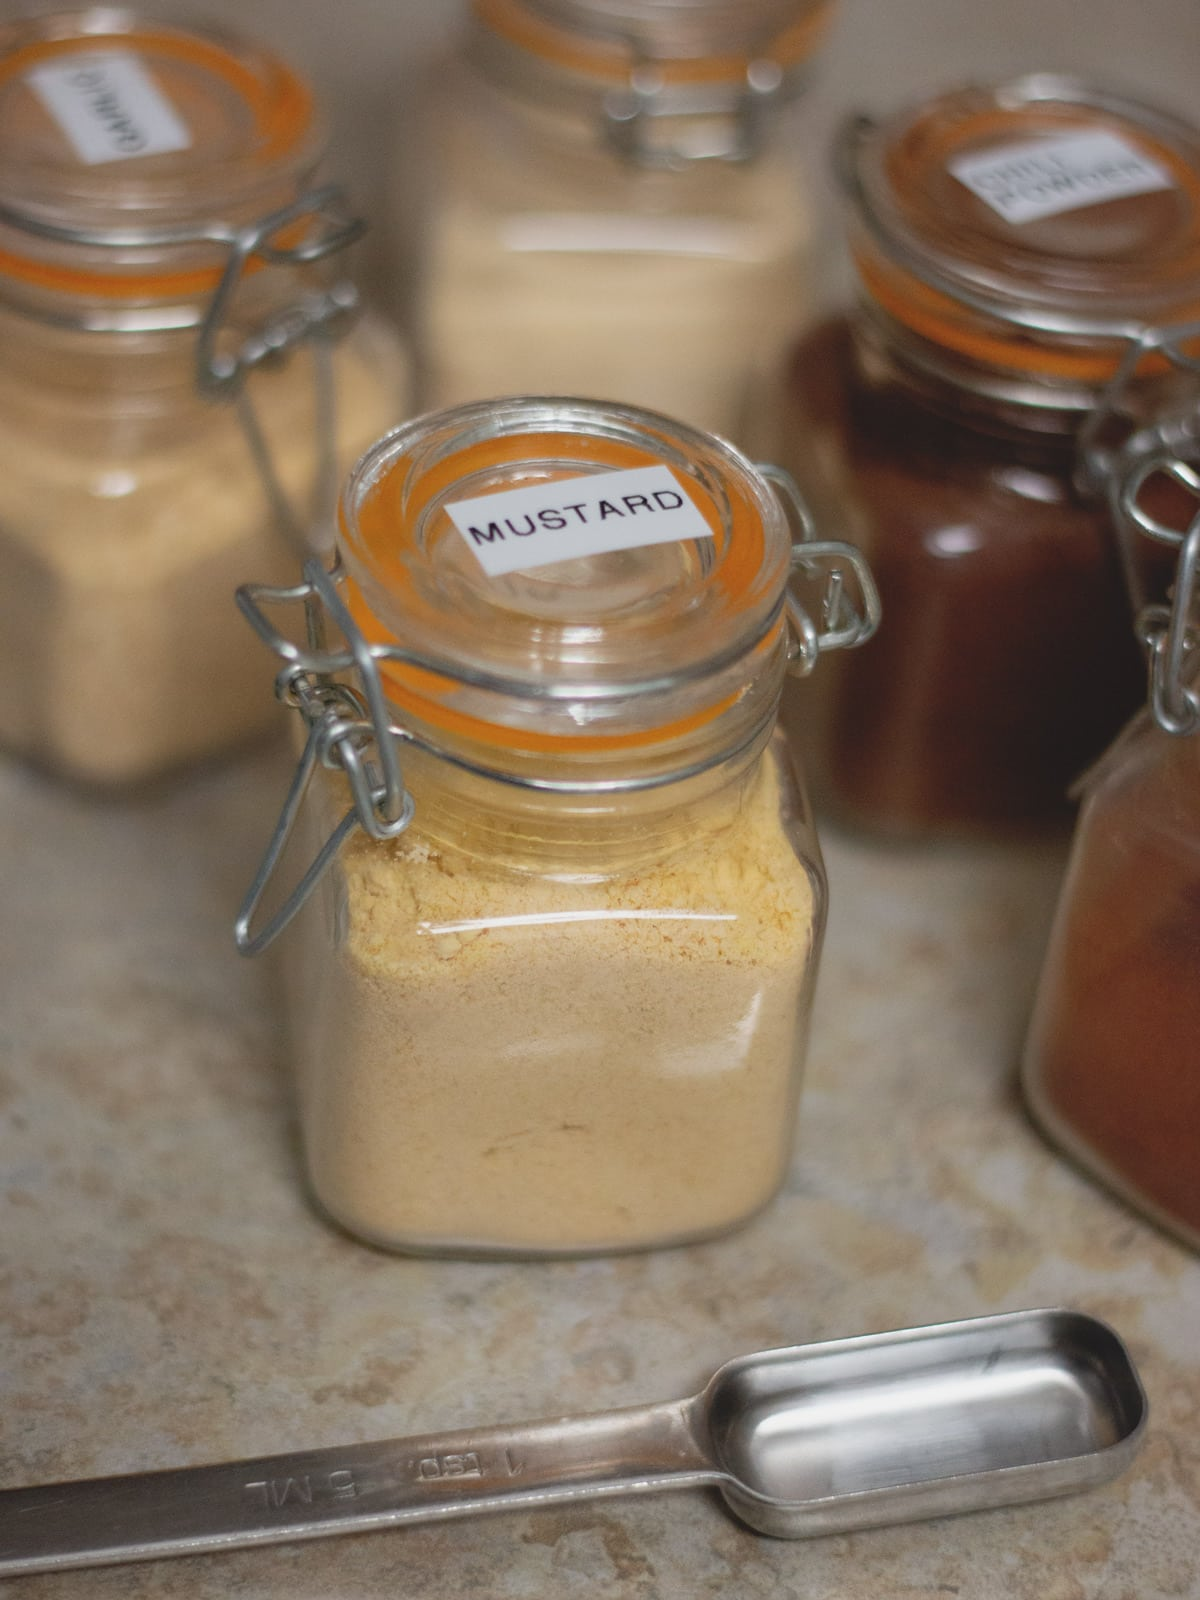 spice jars and measuring spoon